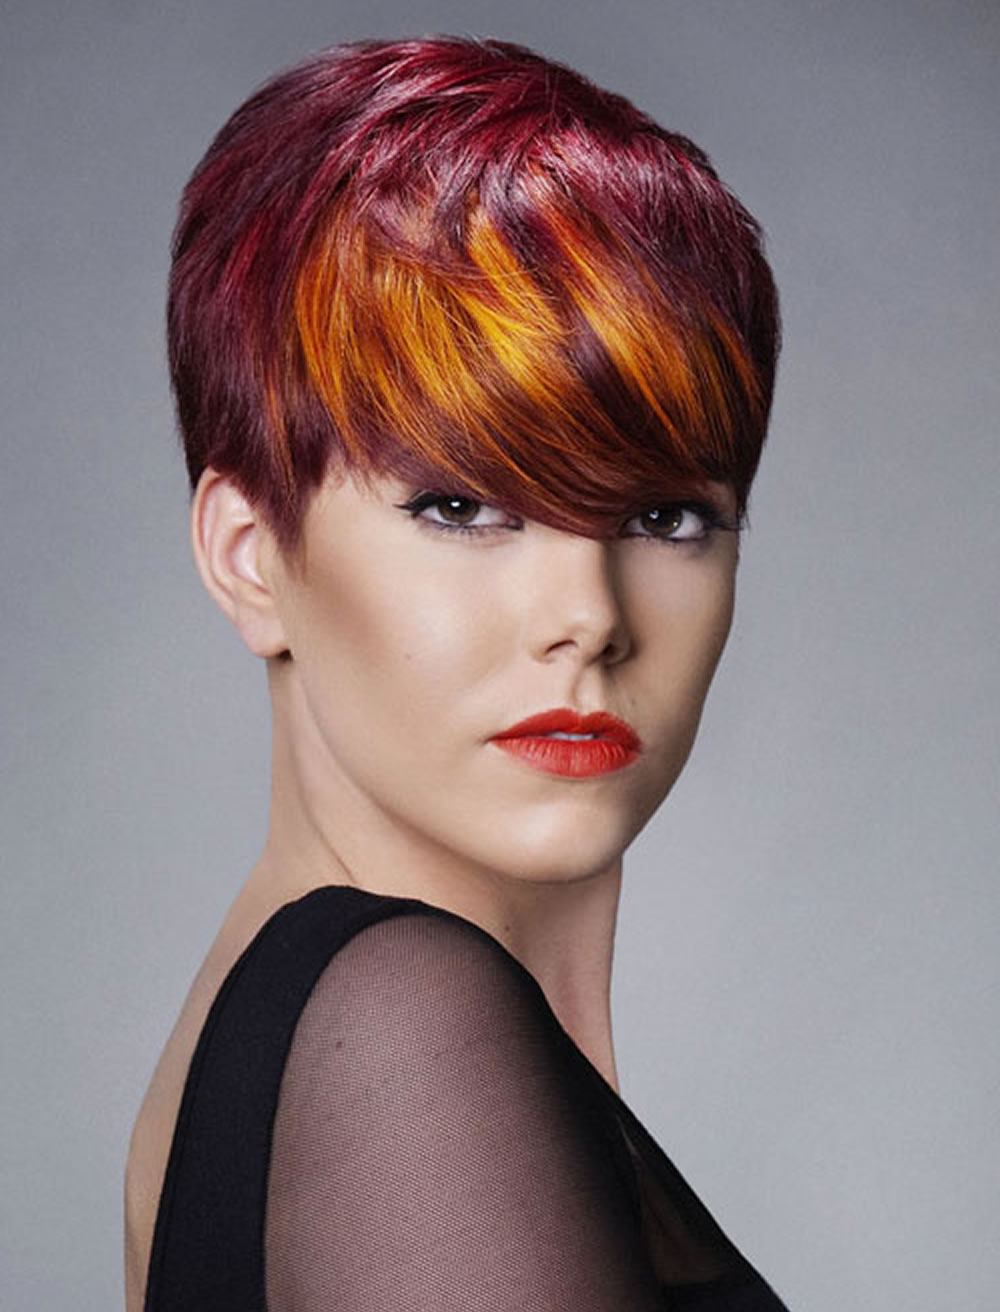 Red Hair Color For Short Hairstyles | 27 Cool Haircut Tutorial For Intended For Short Hairstyles For Red Hair (View 8 of 25)